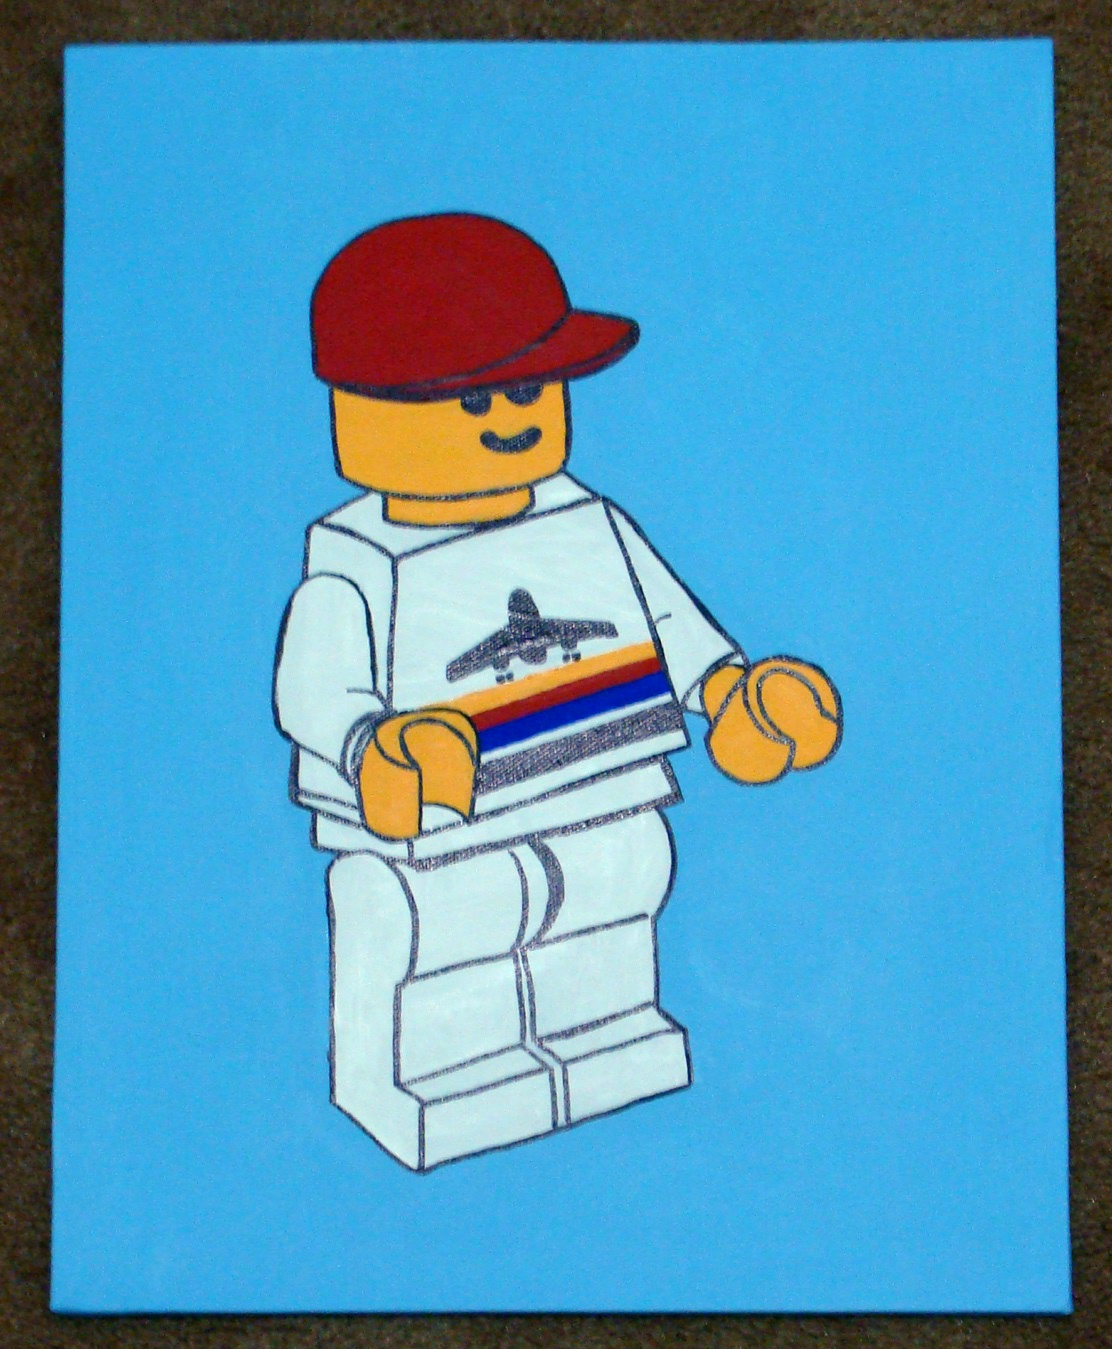 minifig_painting_airport_employee.jpg